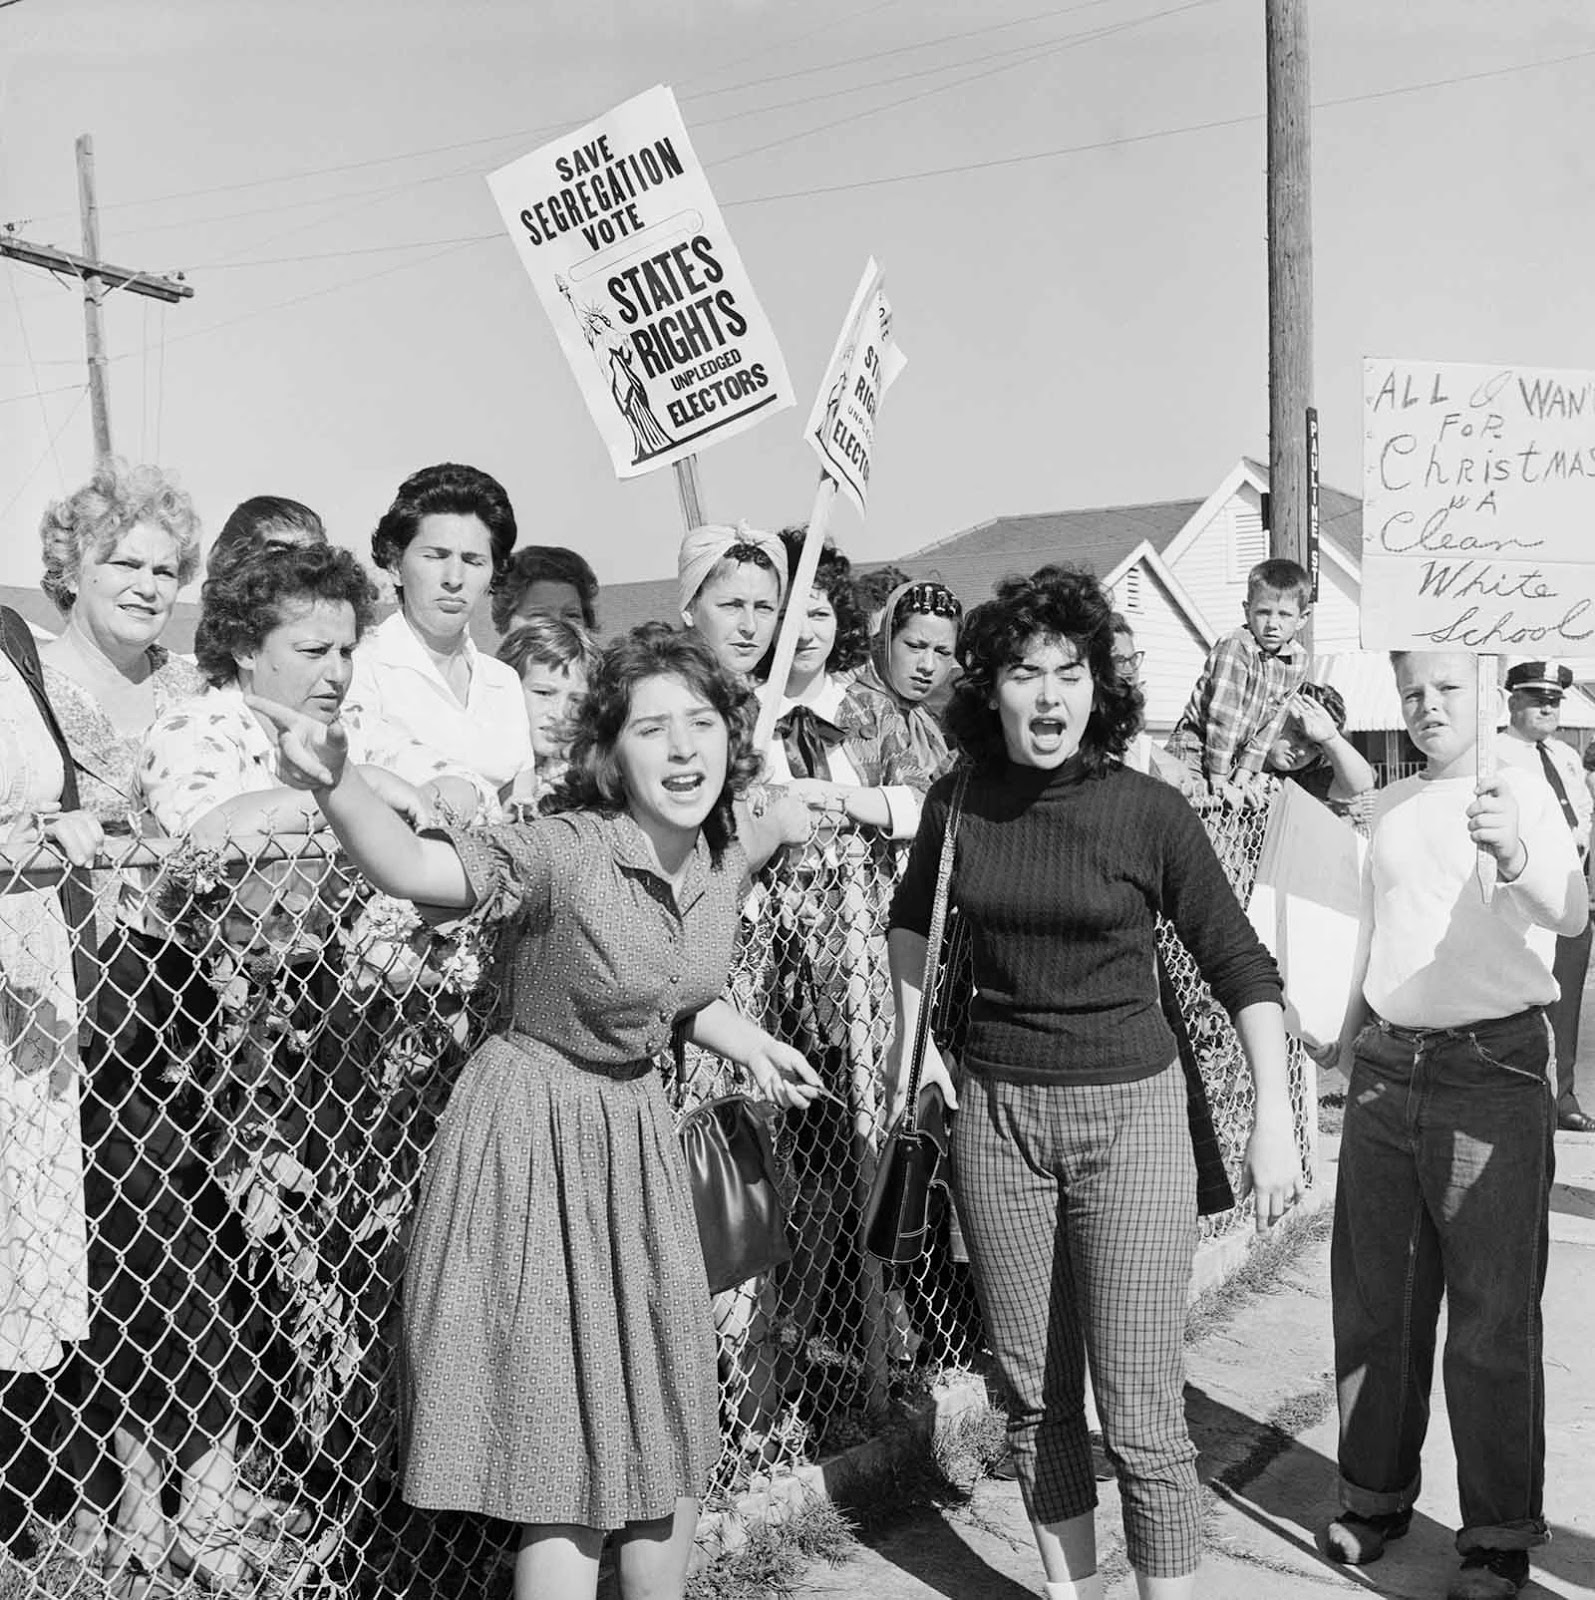 "Women at William Franz Elementary School yell at police officers during a protest against desegregation of the school. Some carry signs stating ""All I Want For Christmas is a Clean White School"" and ""Save Segregation Vote, States Rights Pledged Electors""."